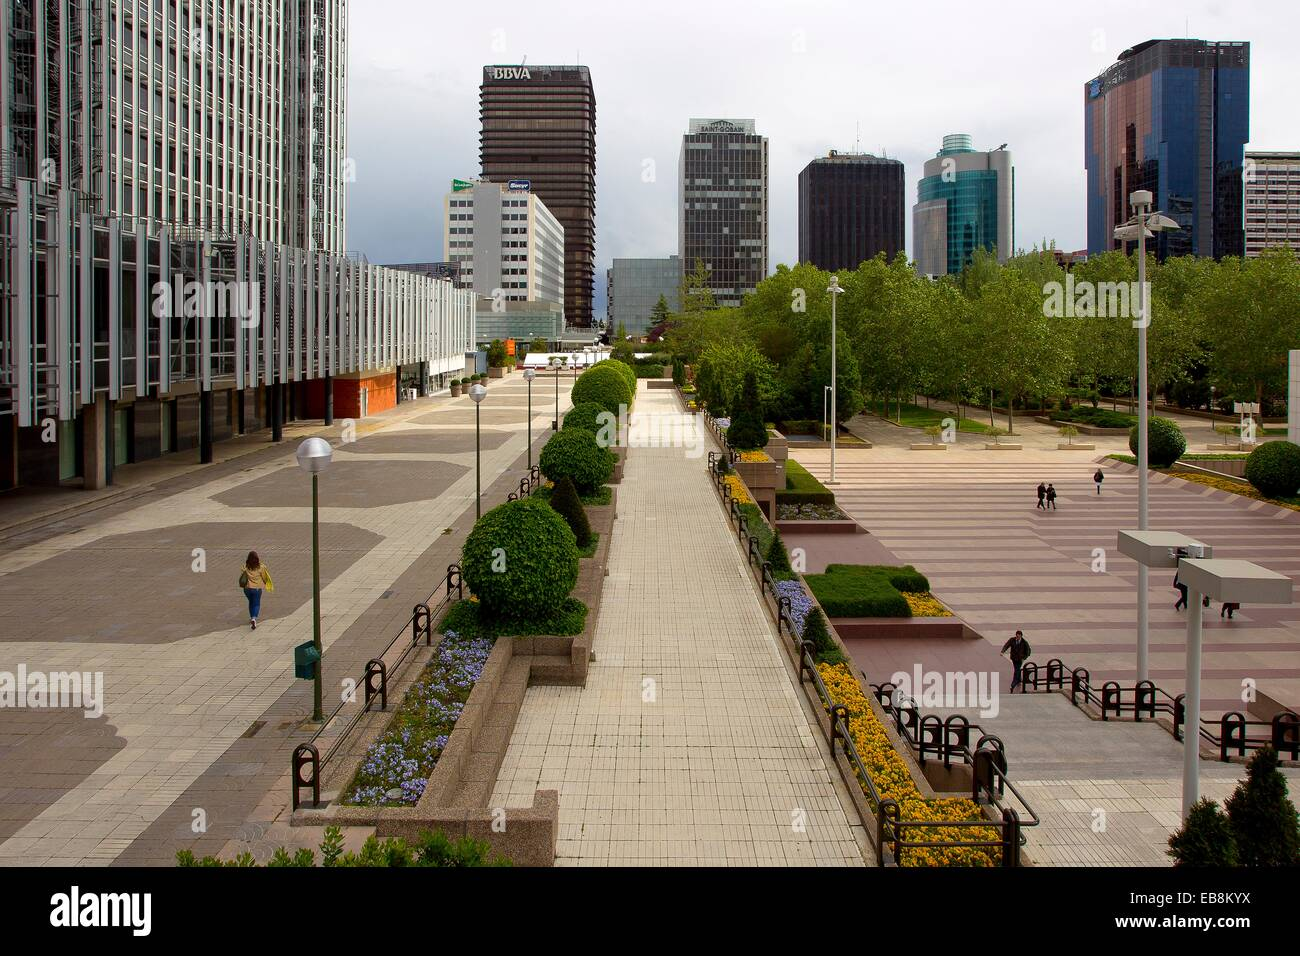 Azca business center, Madrid, Spain Stock Photo